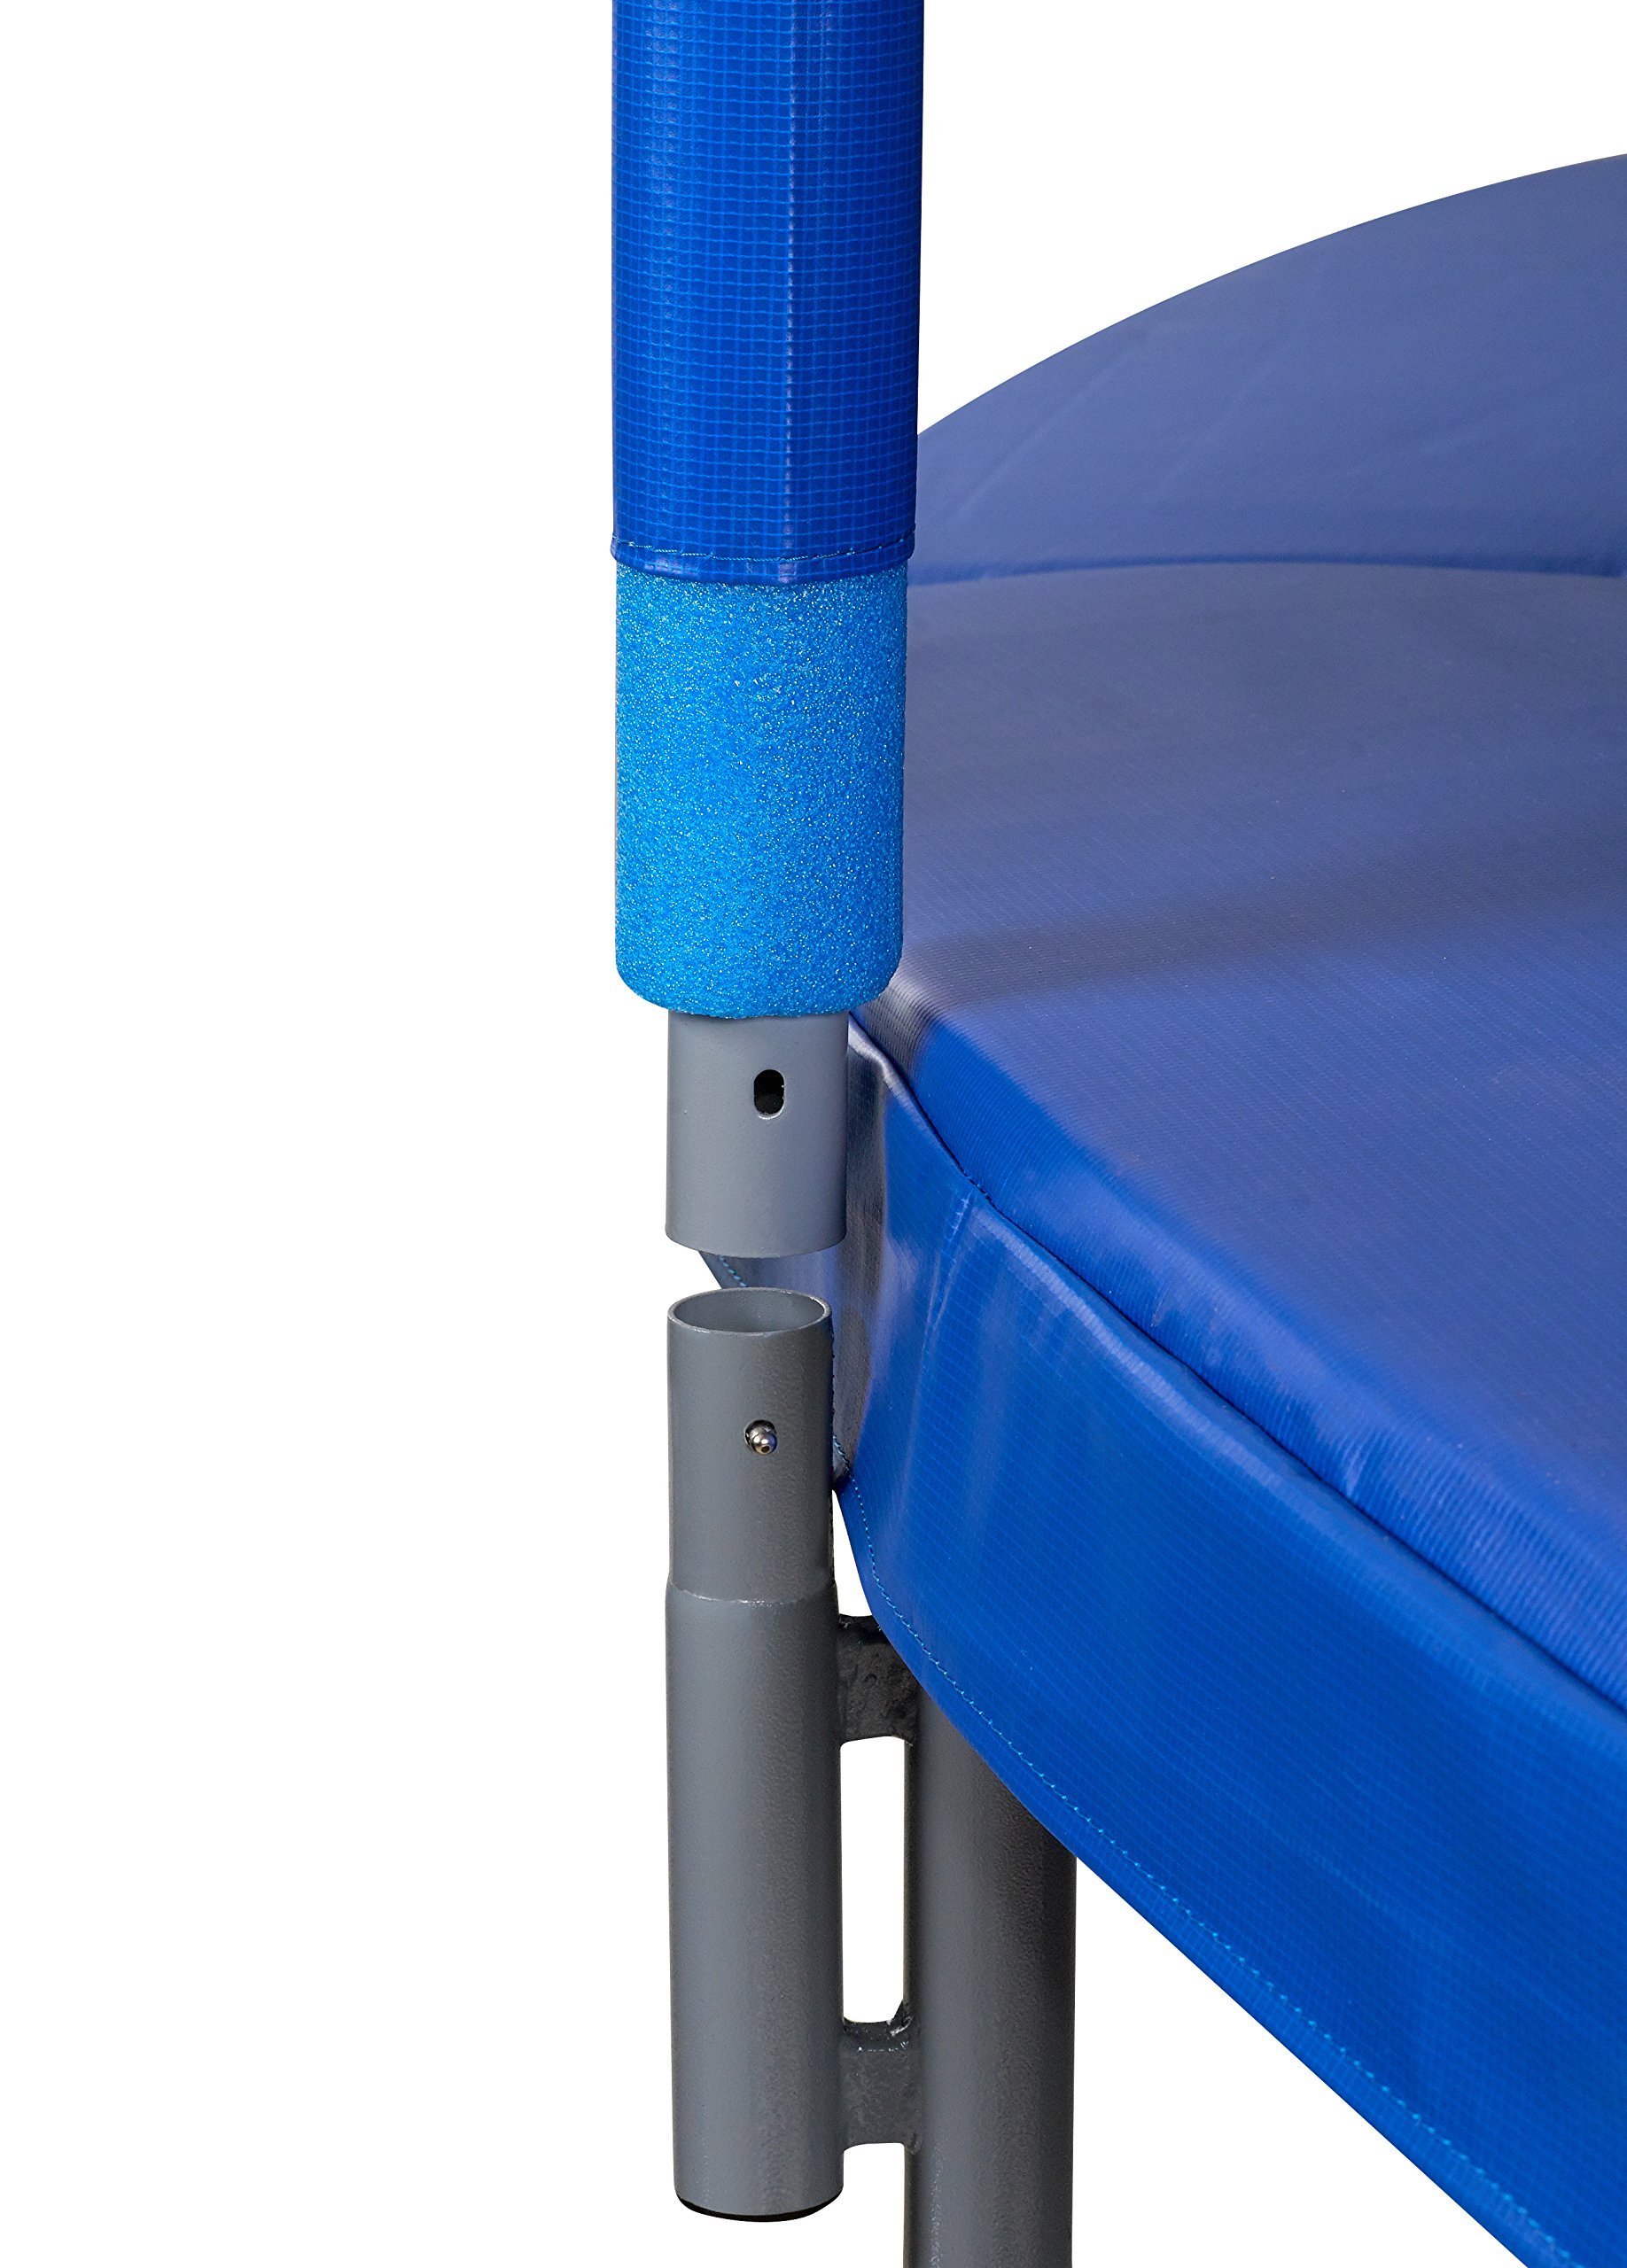 Upper Bounce 7.5 FT. Trampoline & Enclosure Set equipped with the New ''EASY ASSEMBLE FEATURE'' by Upper Bounce (Image #3)